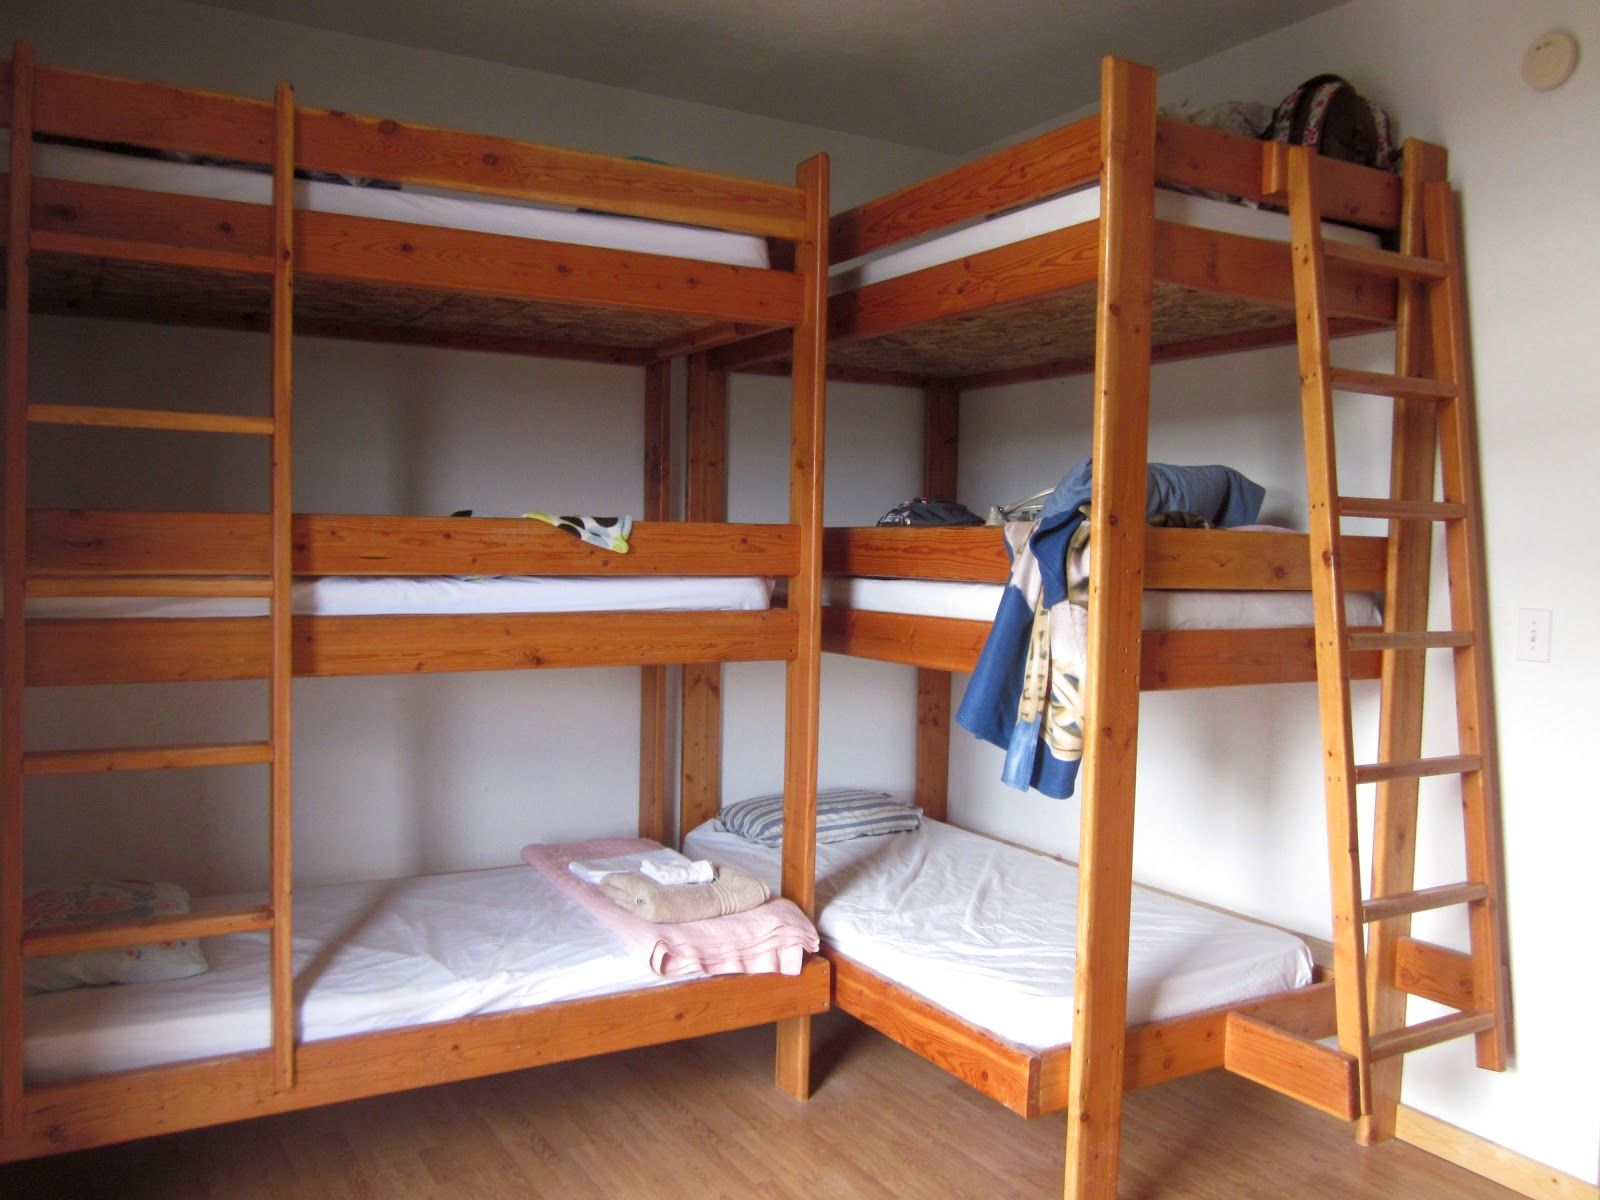 Cool Bunk Beds For 4 Gorgeous Ideas 4 Bed Bunk Simple Beds Cool For